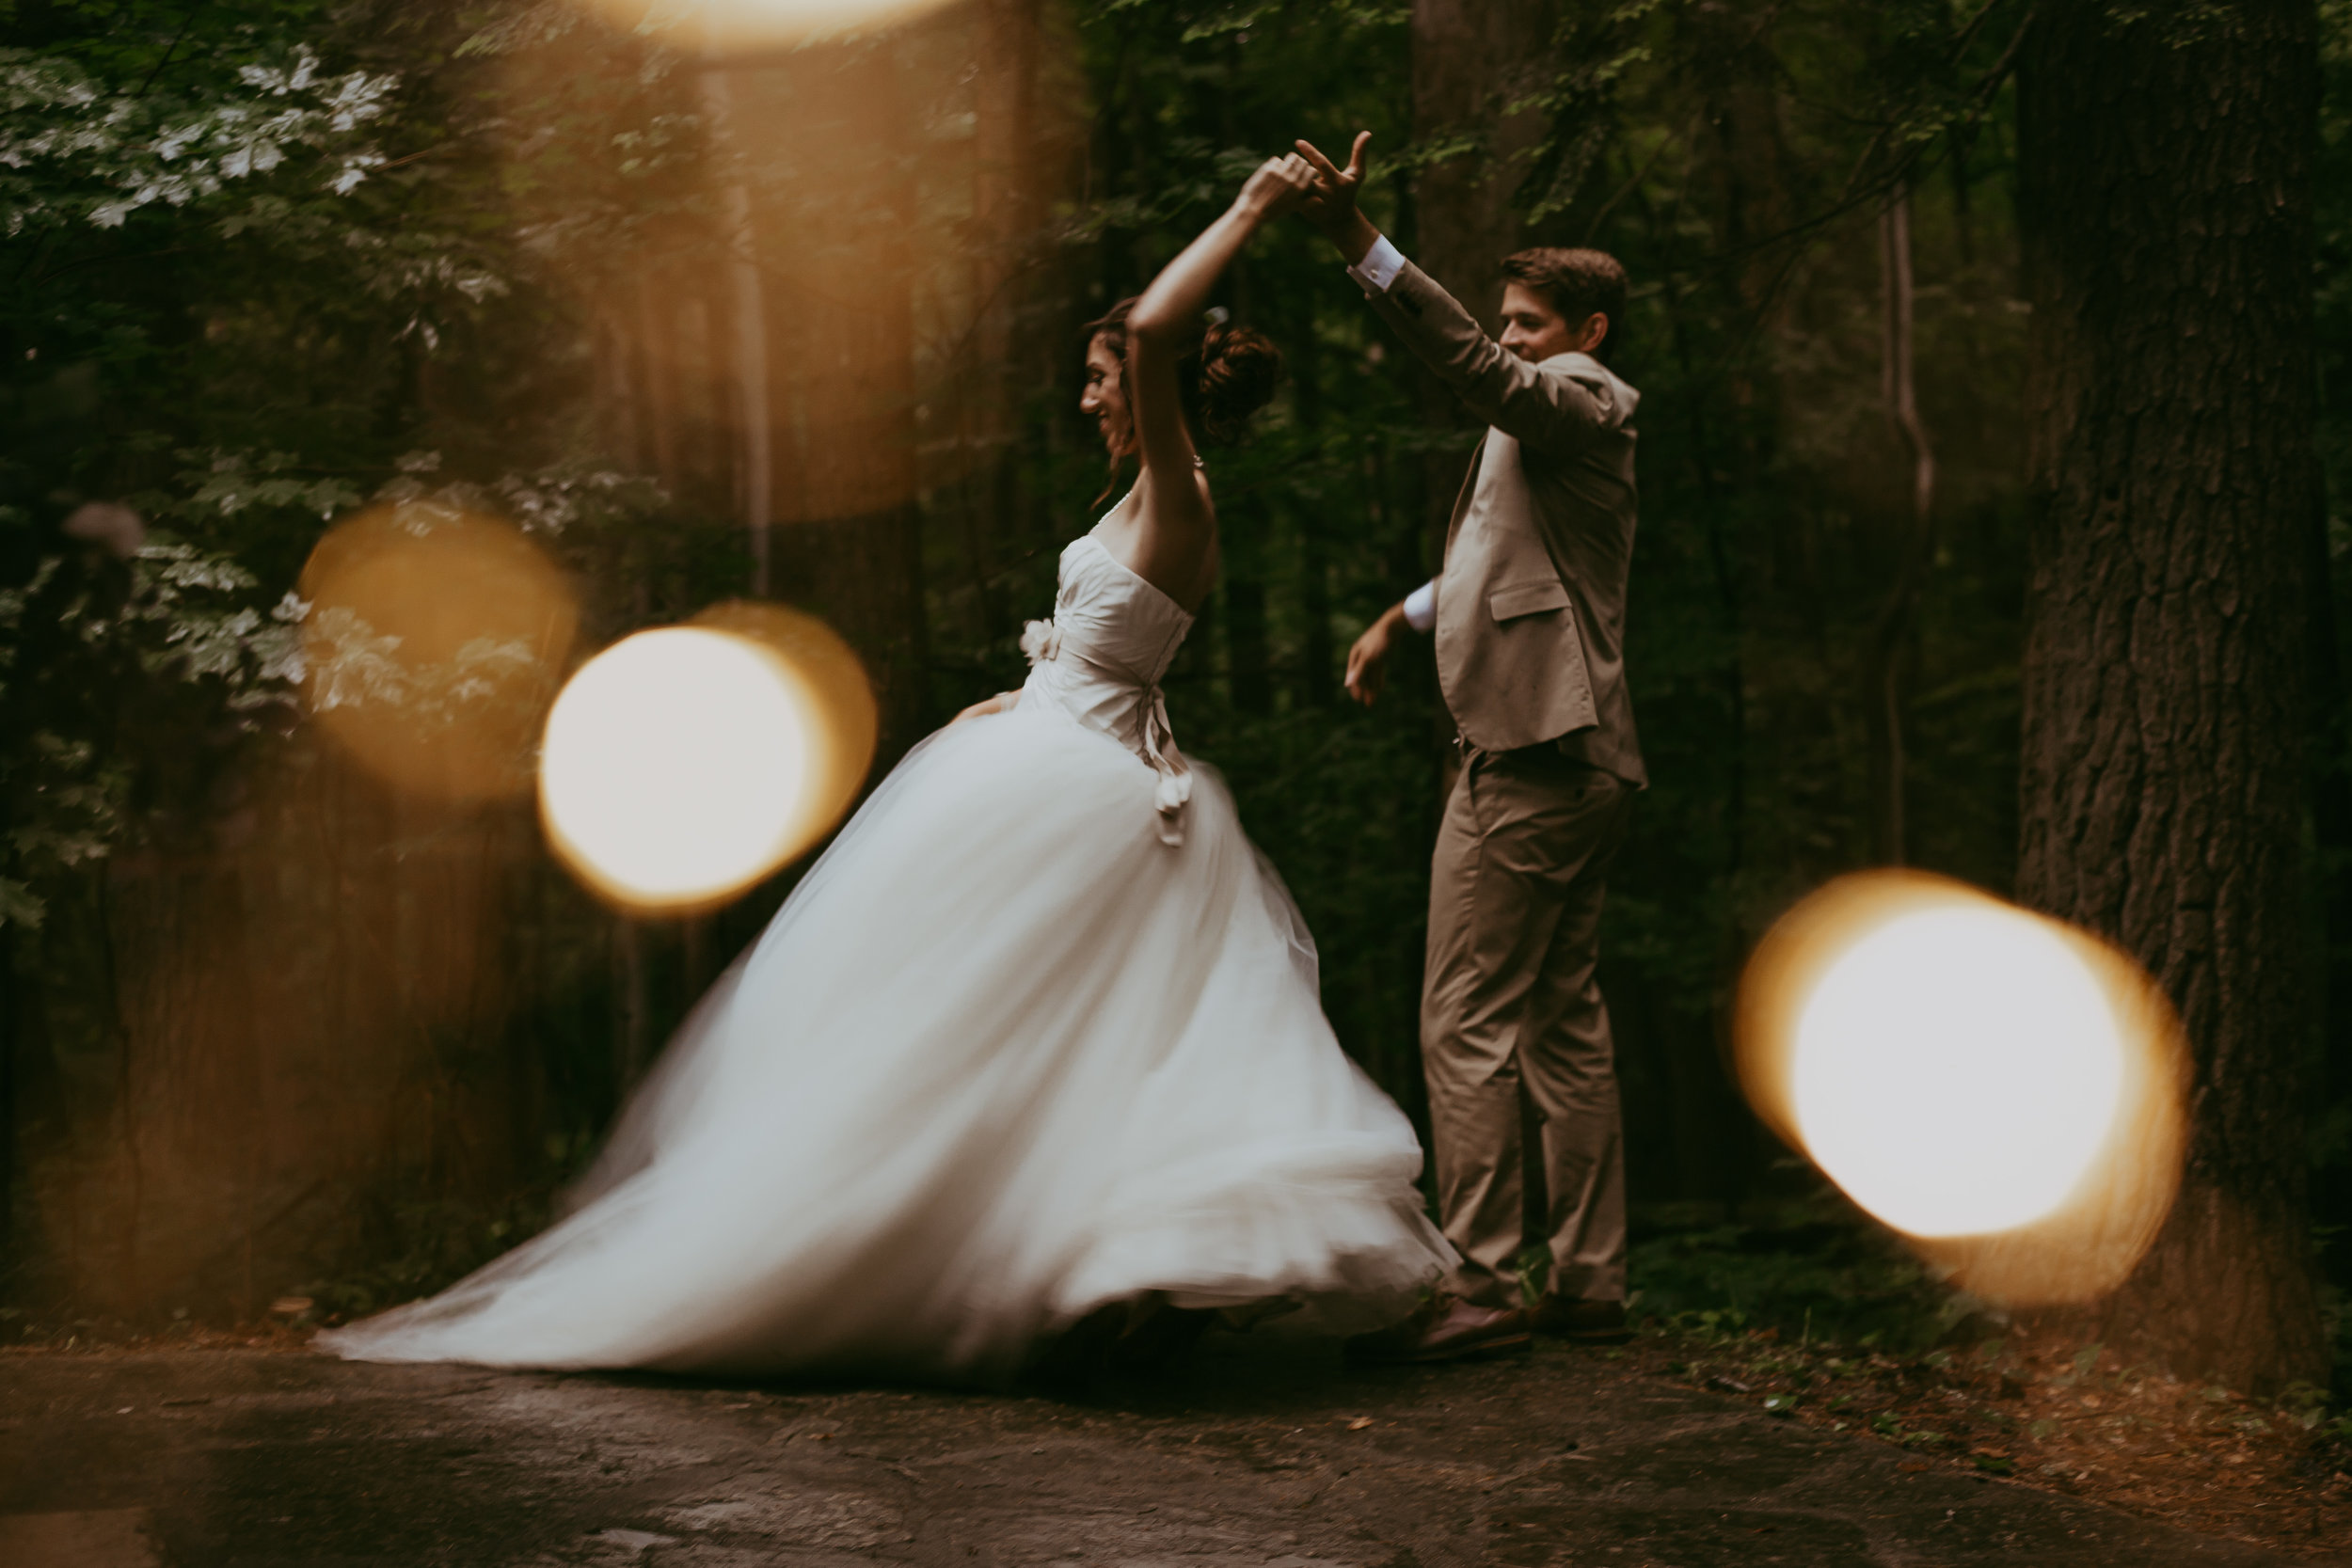 Weddings & Engagements - Planning your big day? I would love to hear about it! Click below to find my packages!